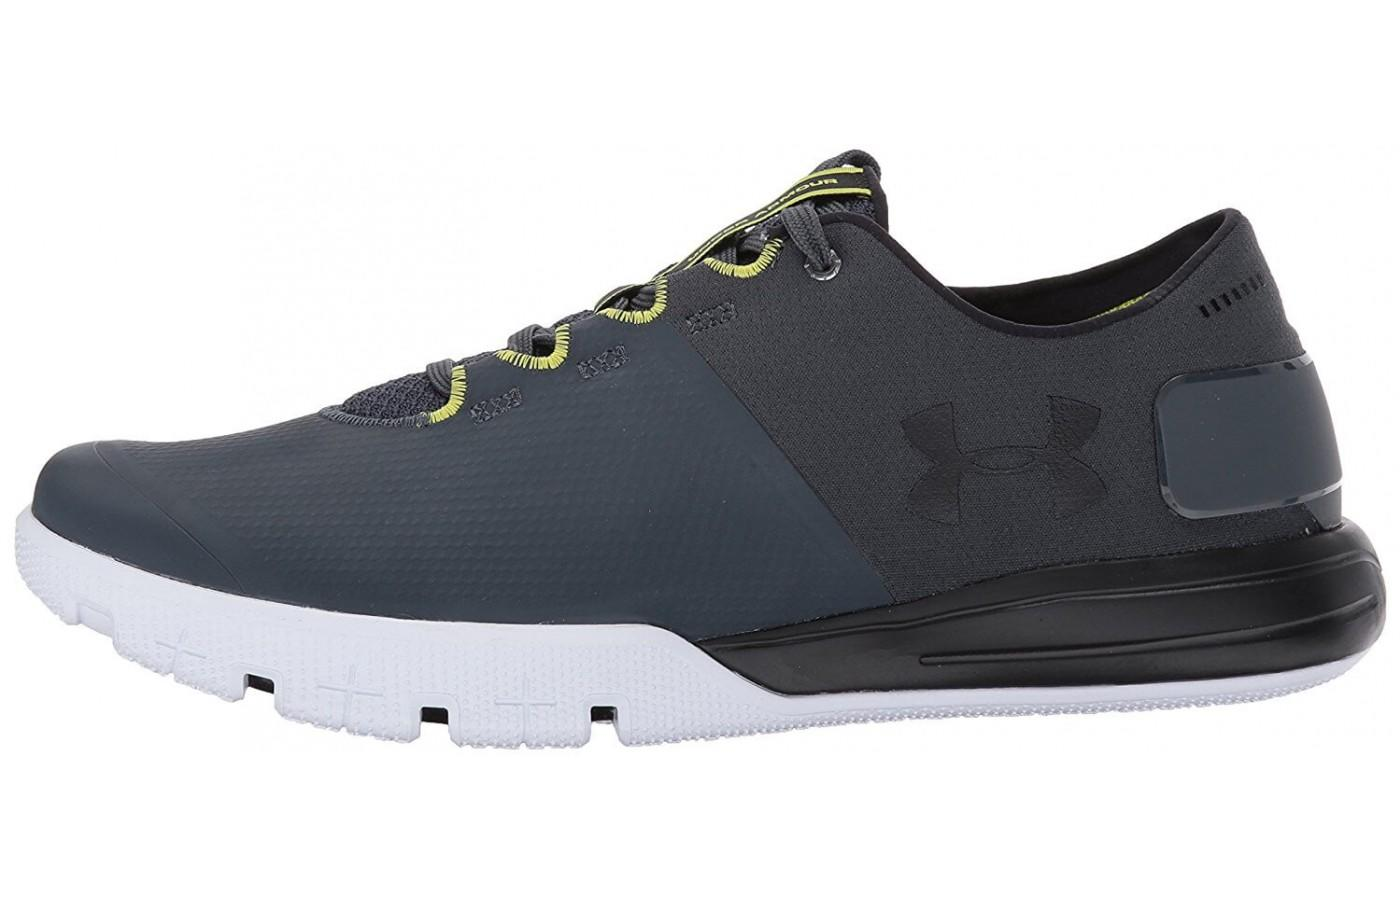 With a futuristic aesthetic and a multitude of color options, the UA Charged Ultimate 2.0 is a very stylish shoe.